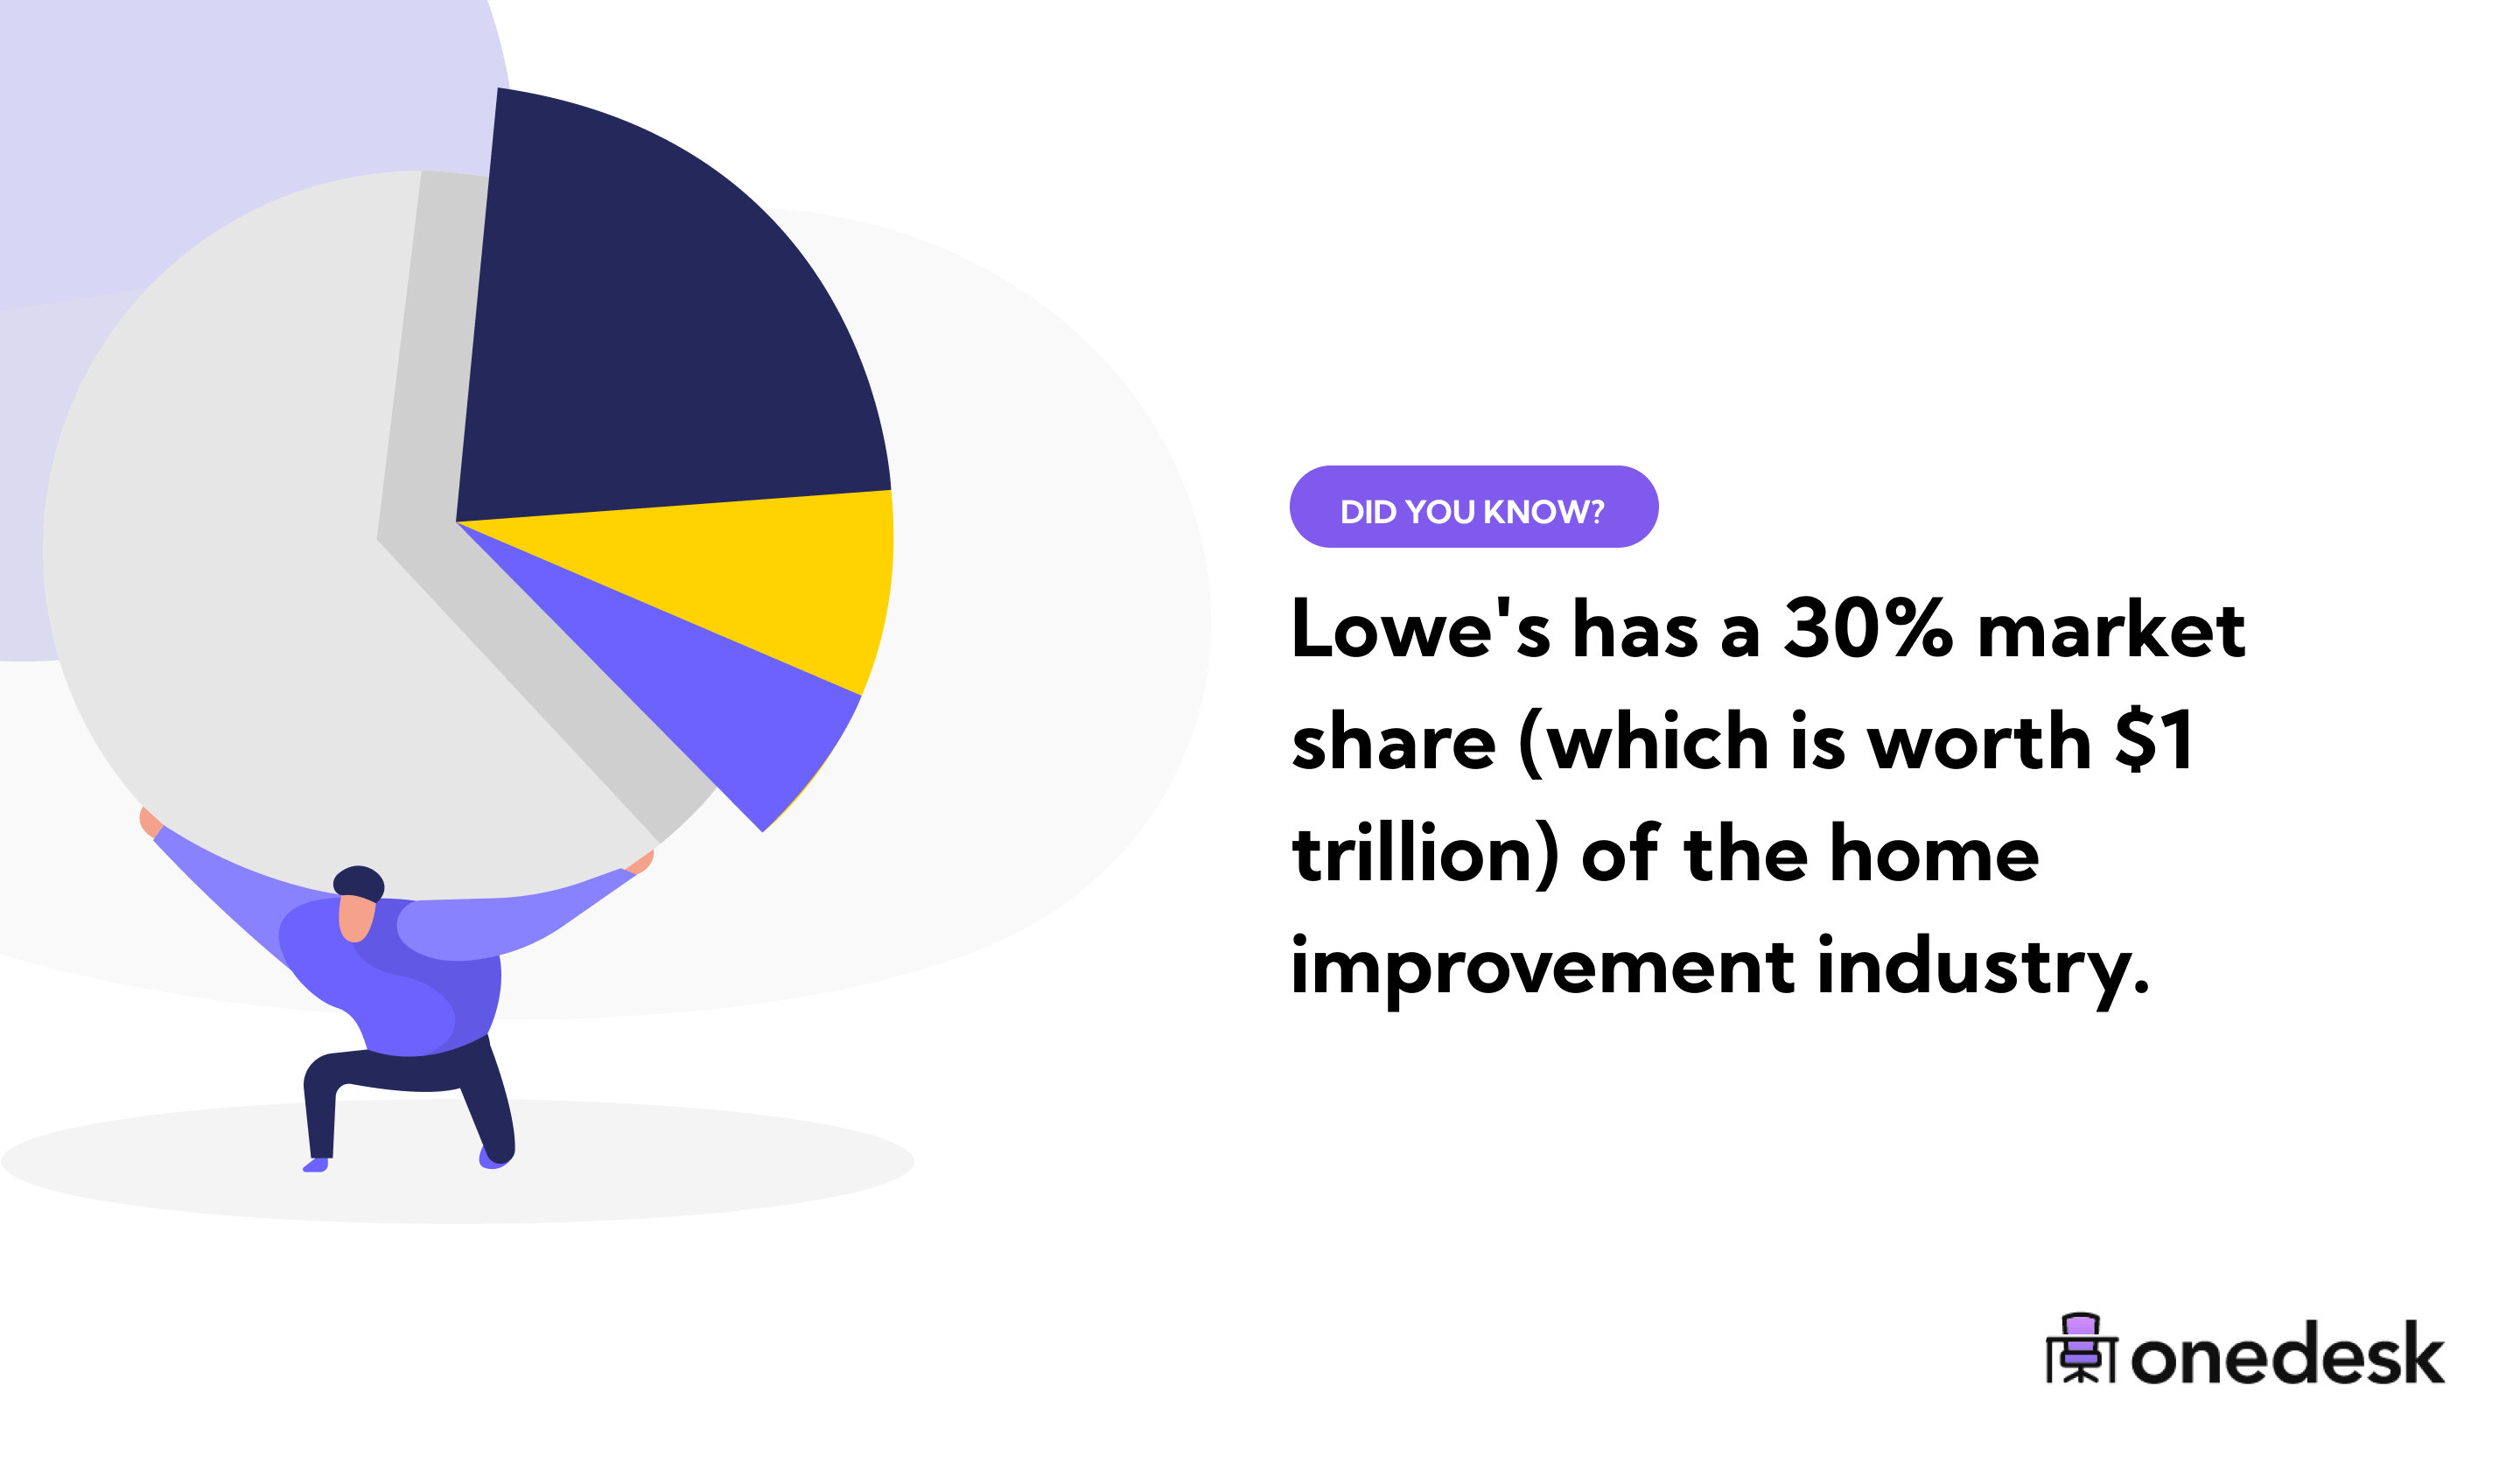 lowes market share